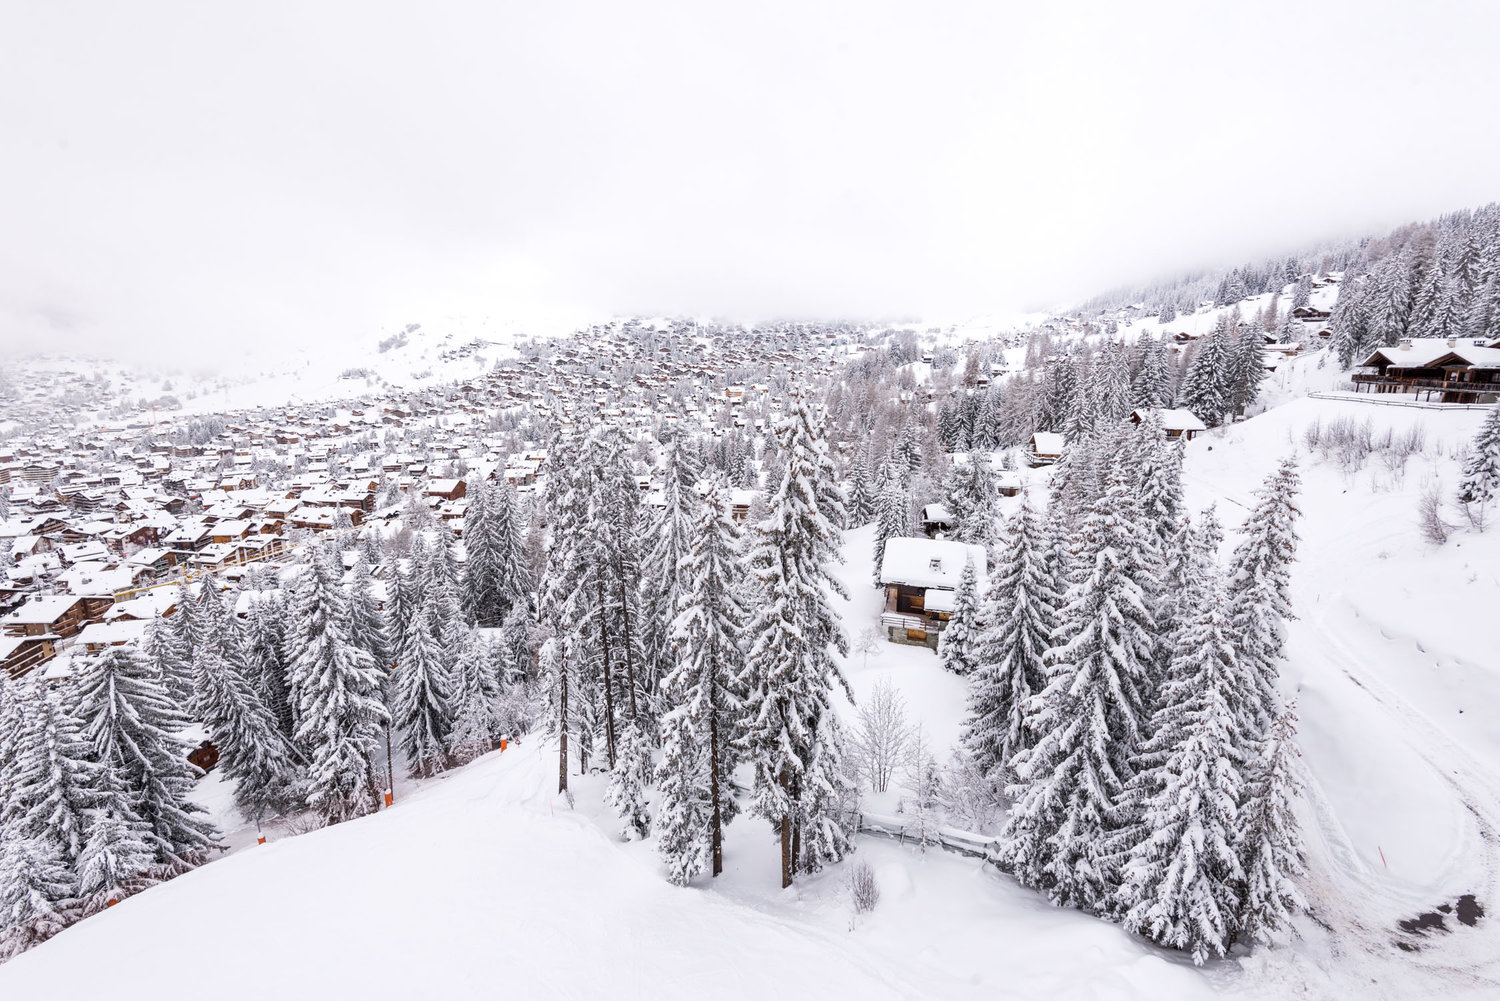 Nevai Hotel: A Boutique Ski Lodge in Verbier, Switzerland